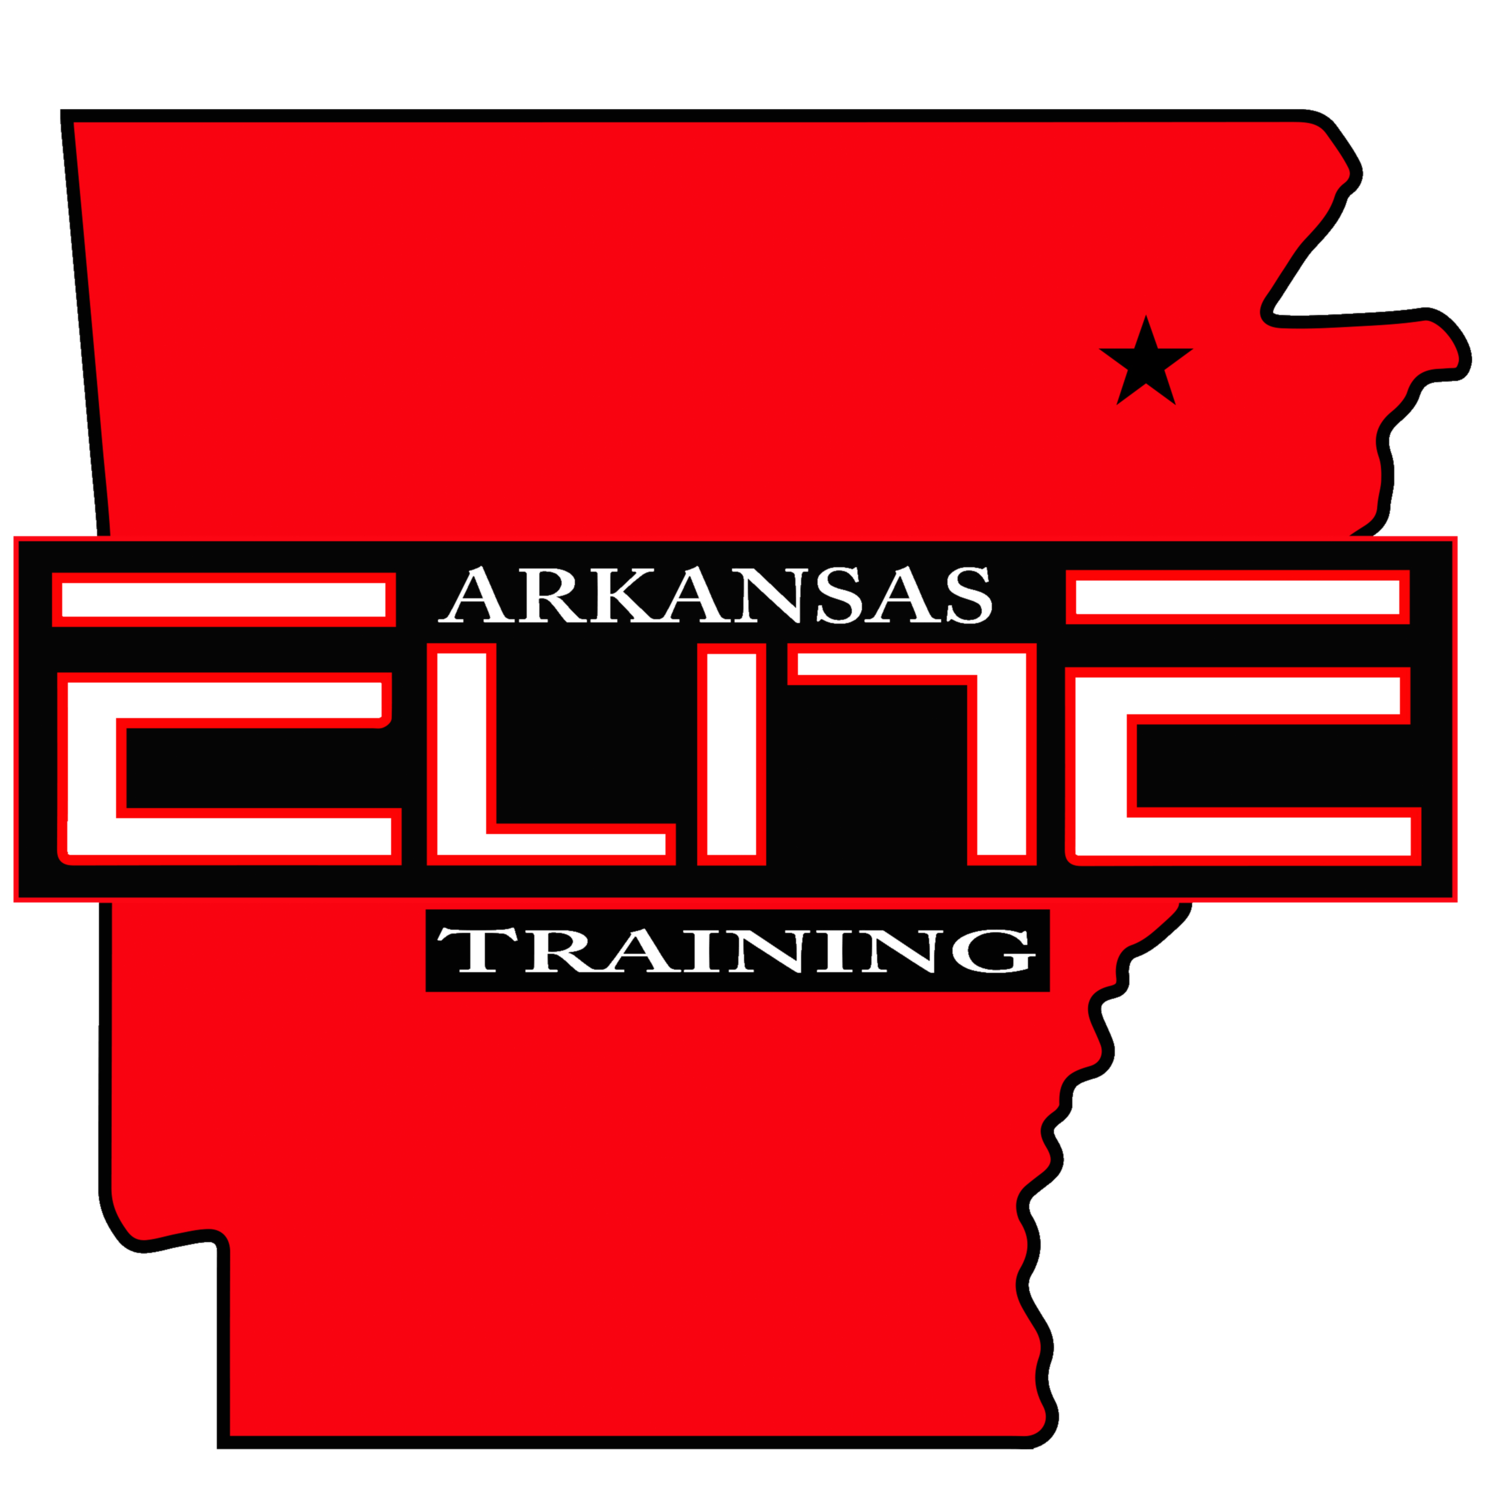 ELITE ARKANSAS TRAINING